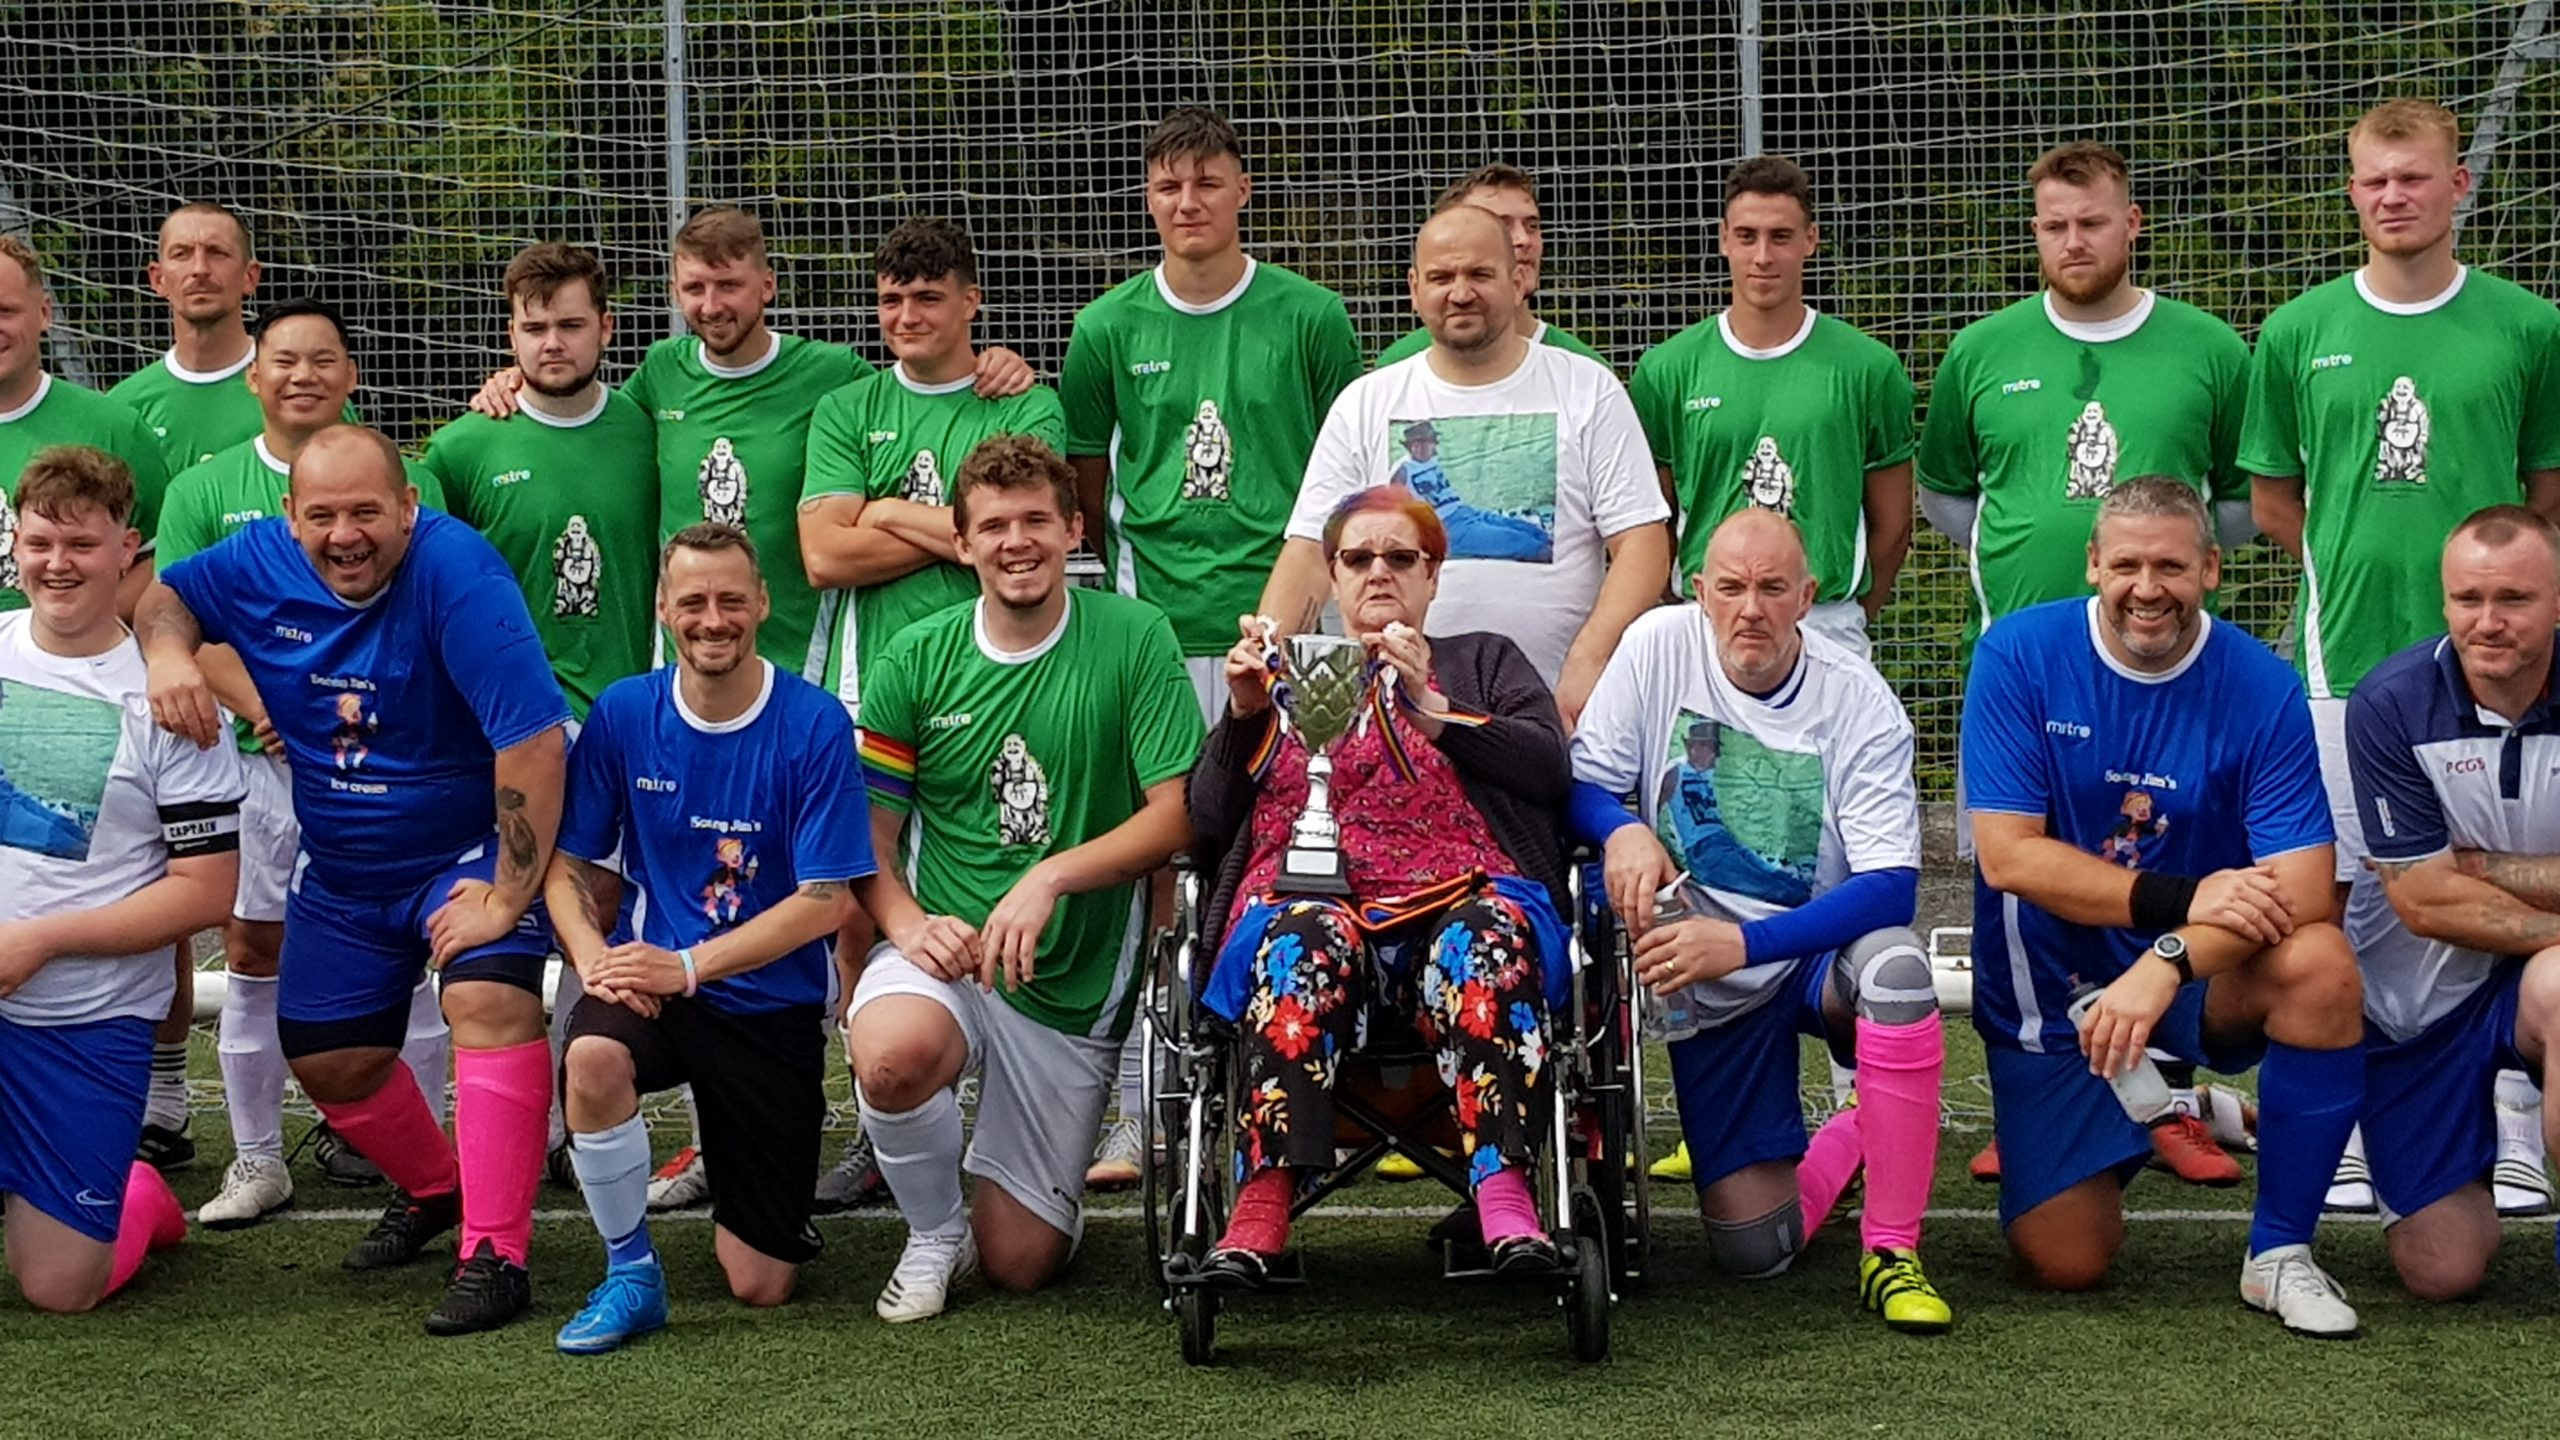 Kick about for Kevin brings it home for local charity in high scoring game